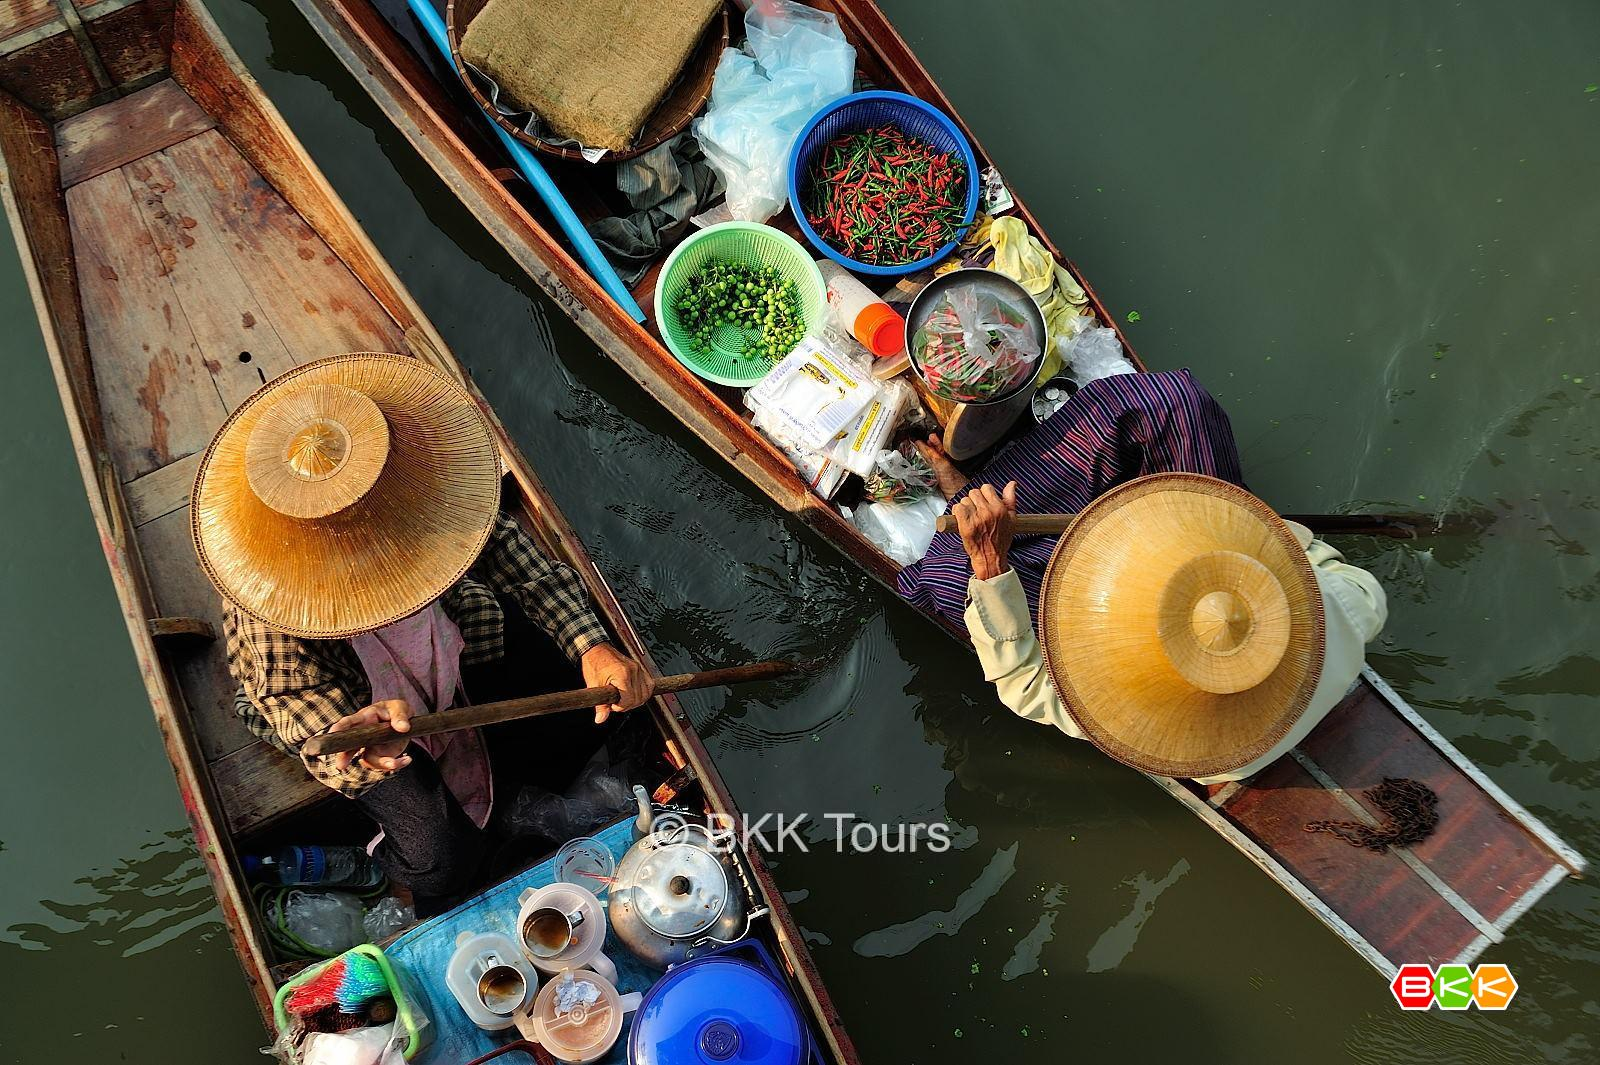 Railway and floating markets